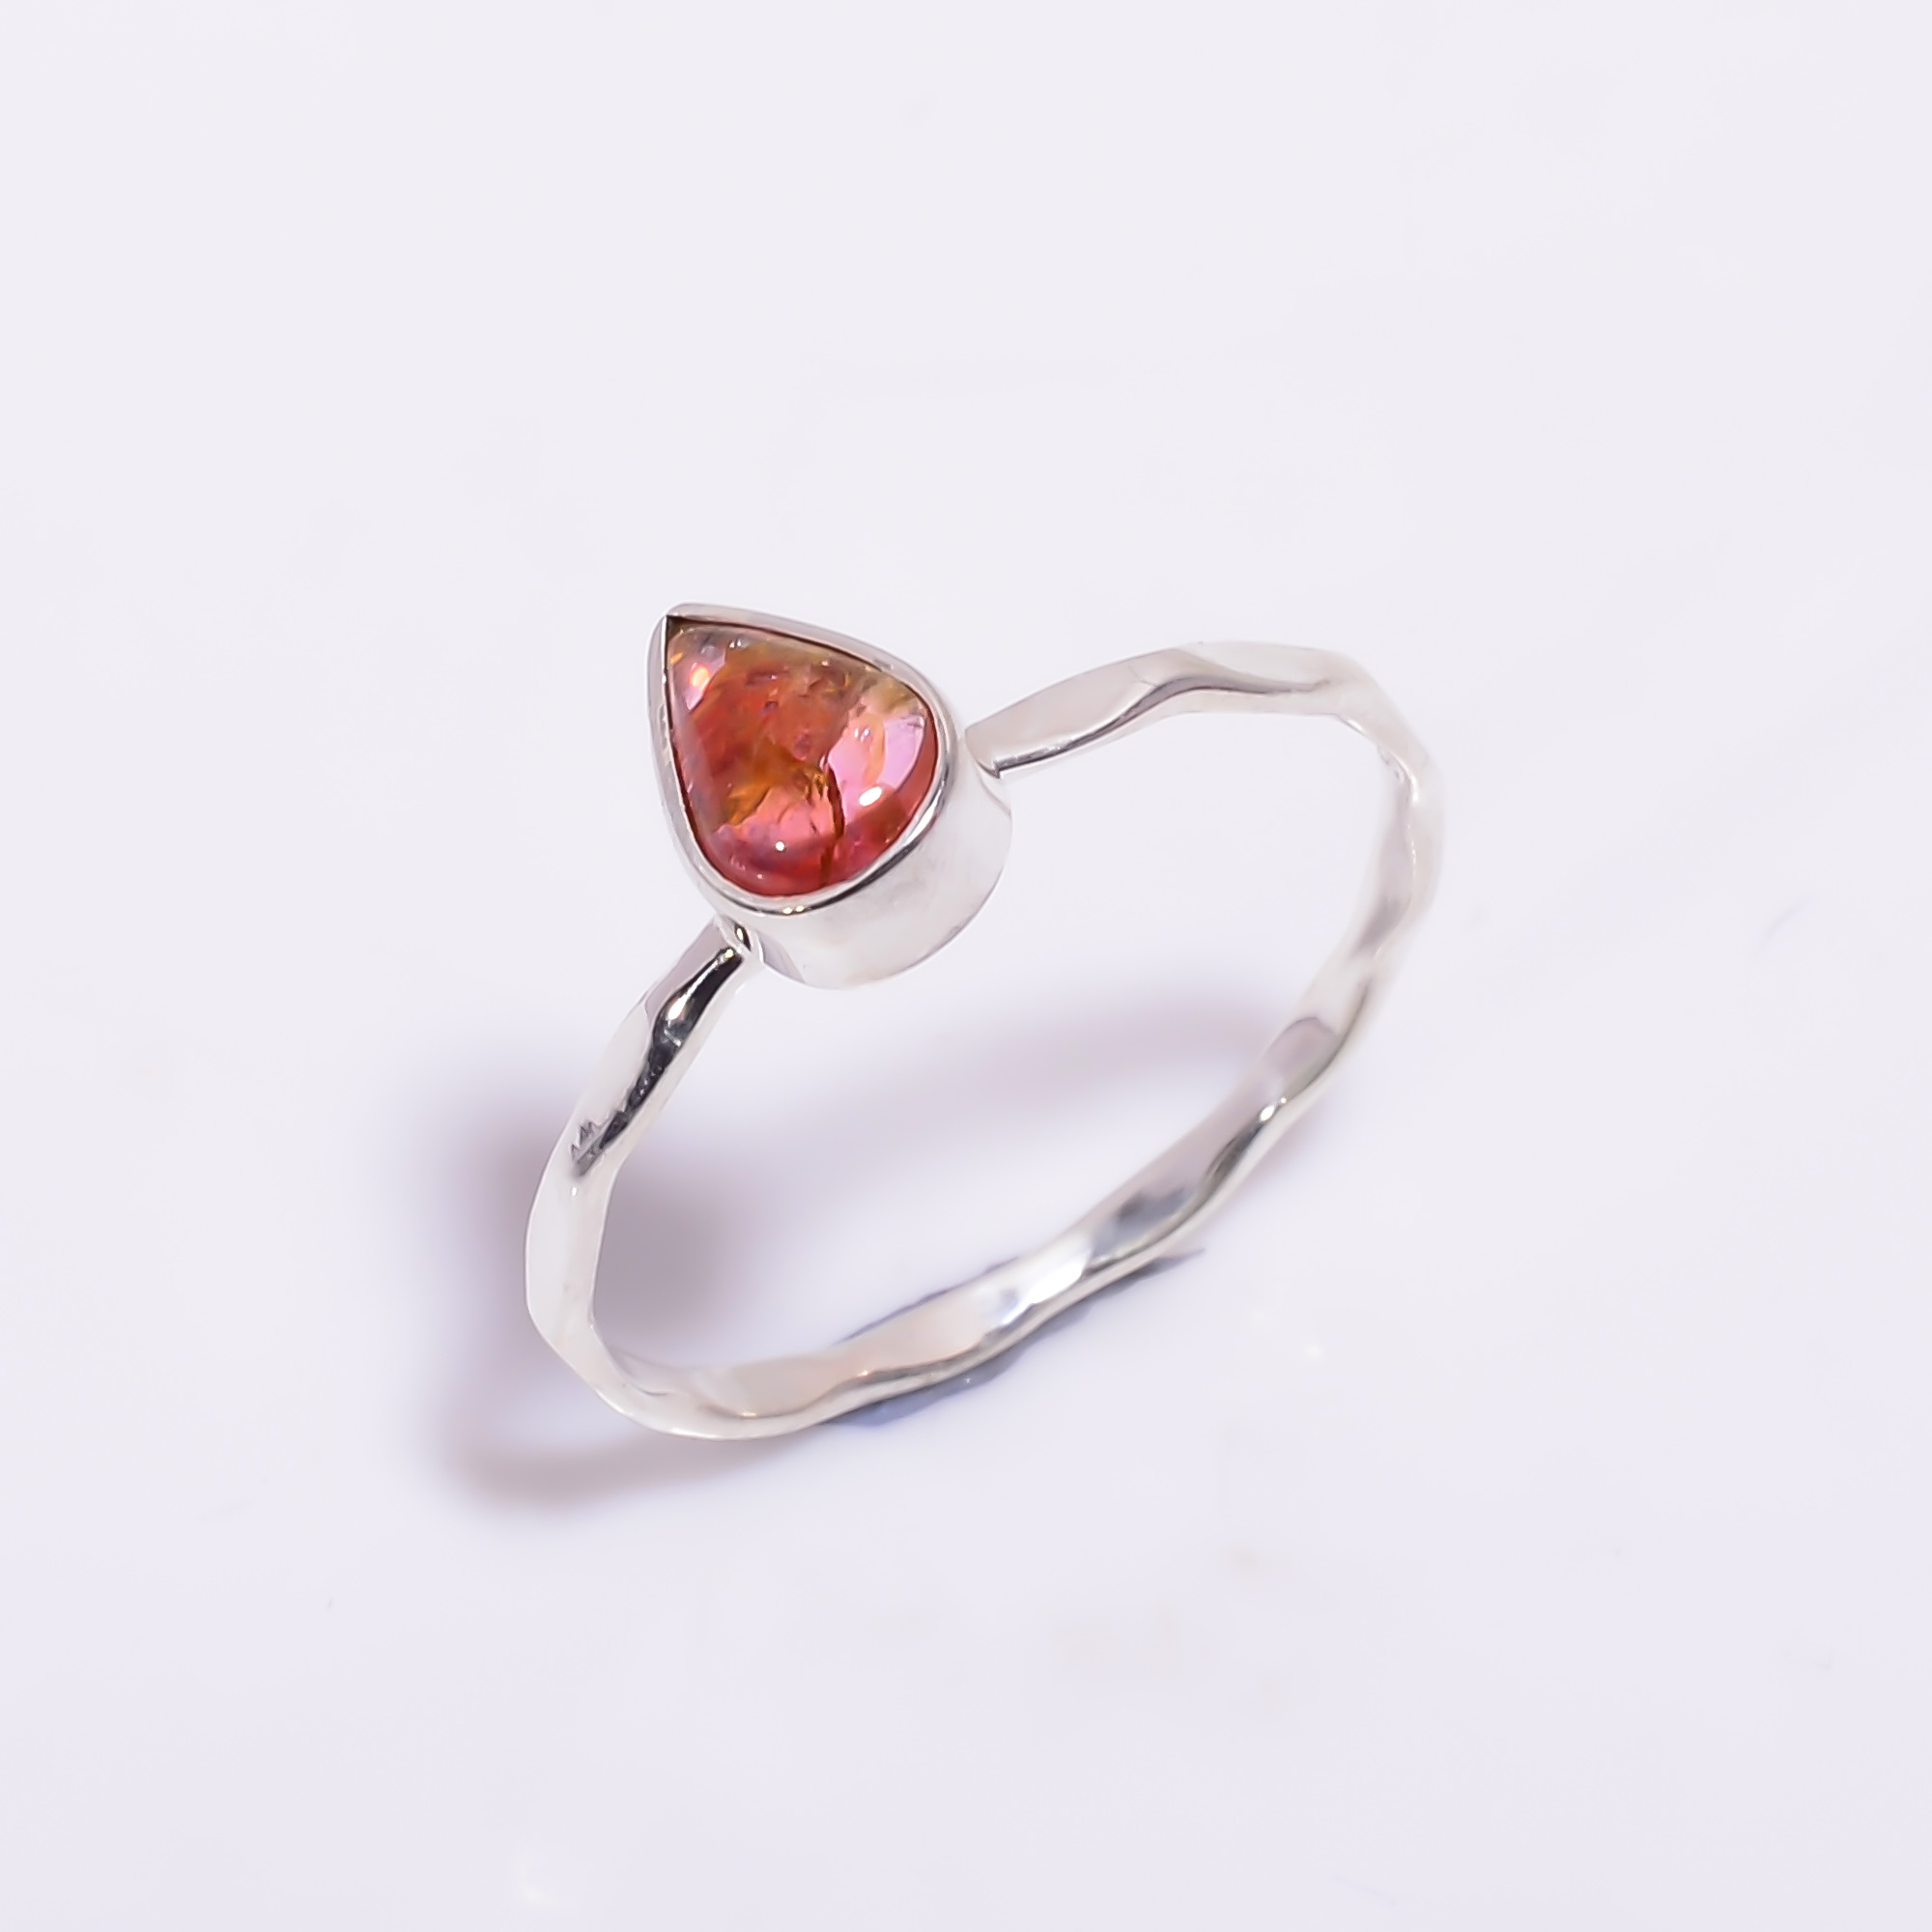 Pink Tourmaline Gemstone 925 Sterling Silver Hammered Stackable Ring Size US 7.5